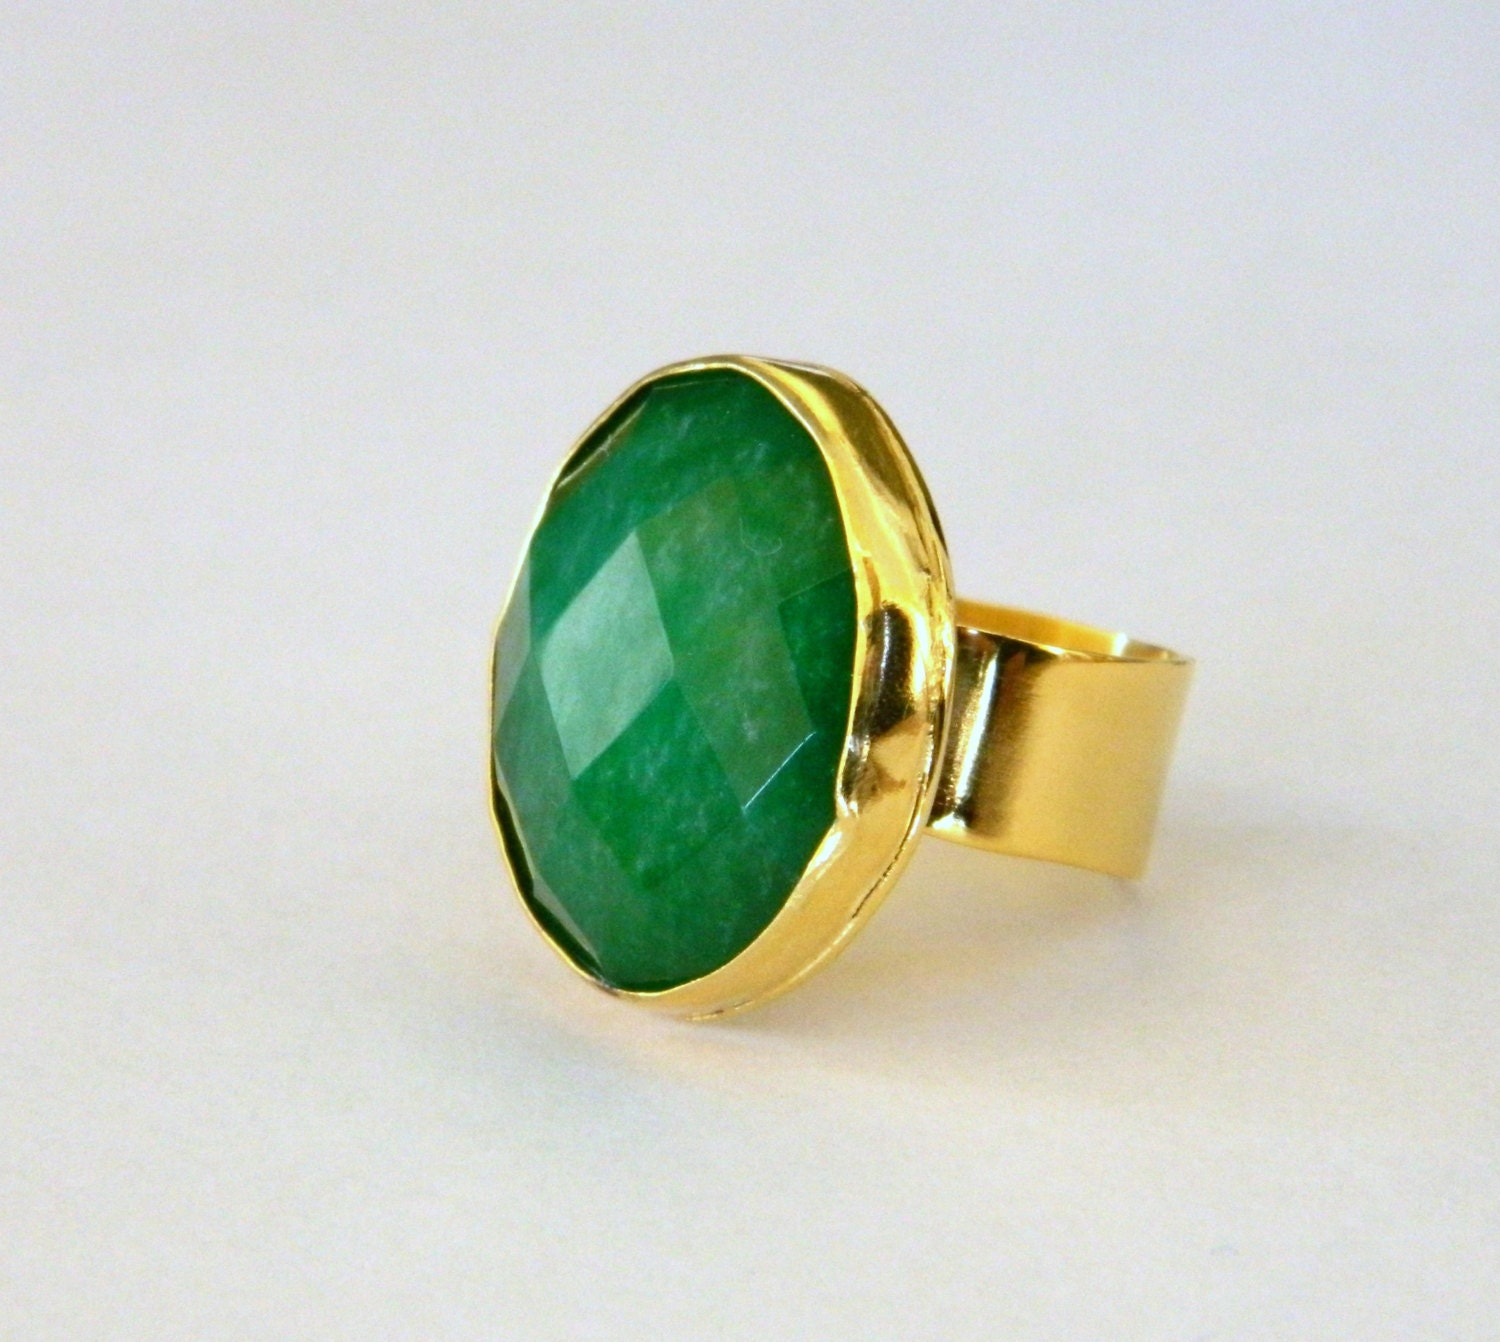 fashion wedding unique gemstone green rings bridal engagement beautiful emerald